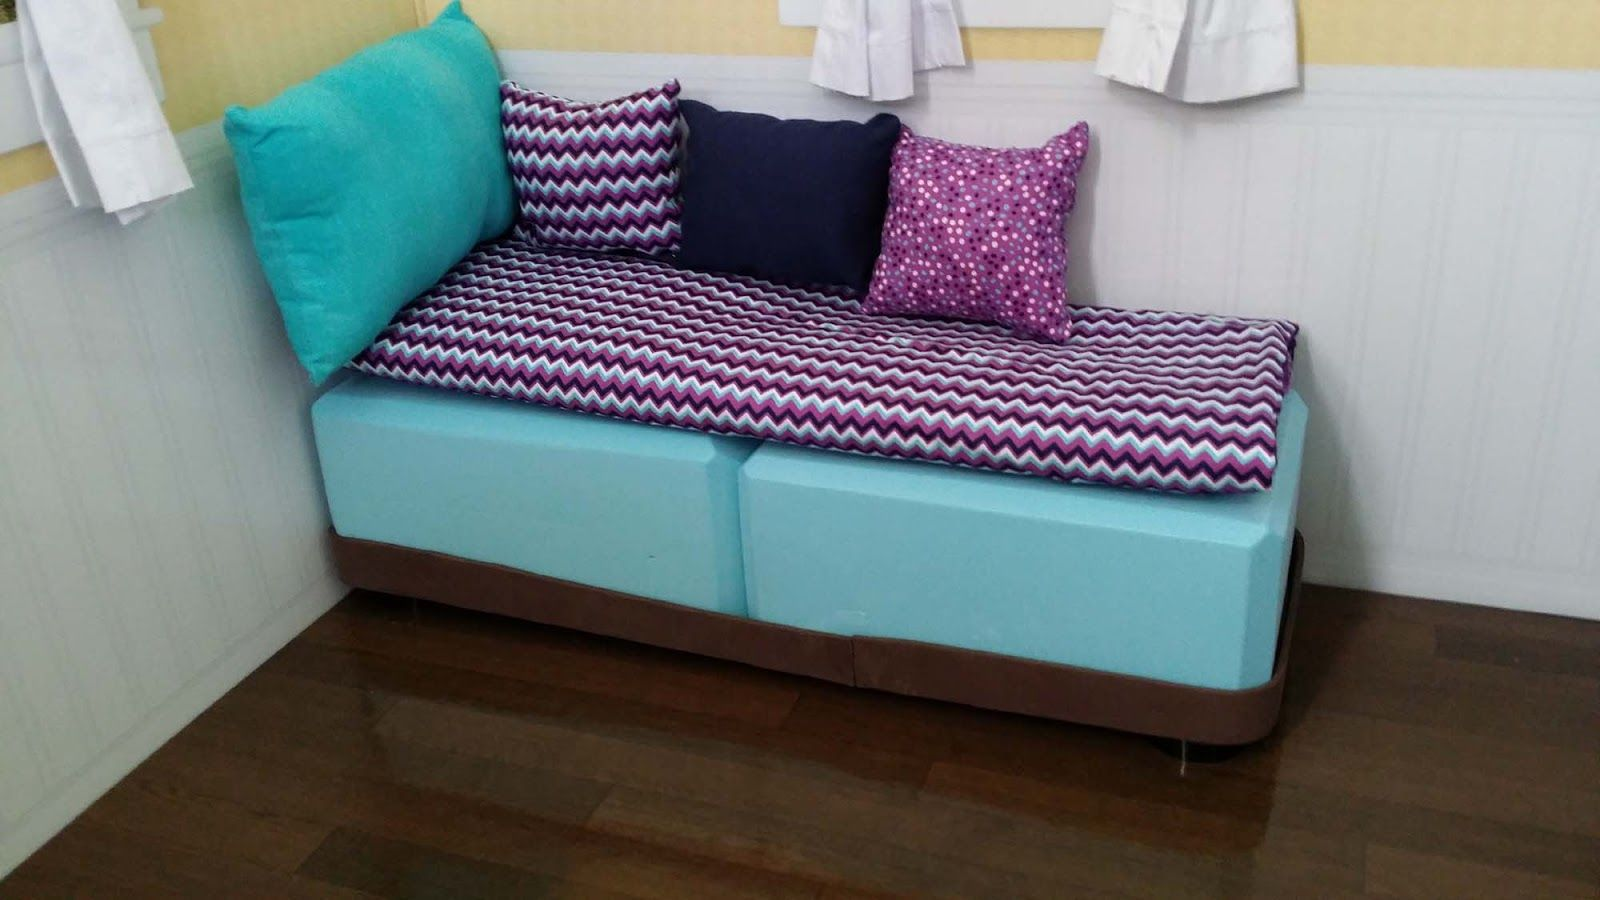 Diy american girl doll furniture - American Girl Doll Crafts And Fun Craft Make A Doll Chaise Lounge Chair